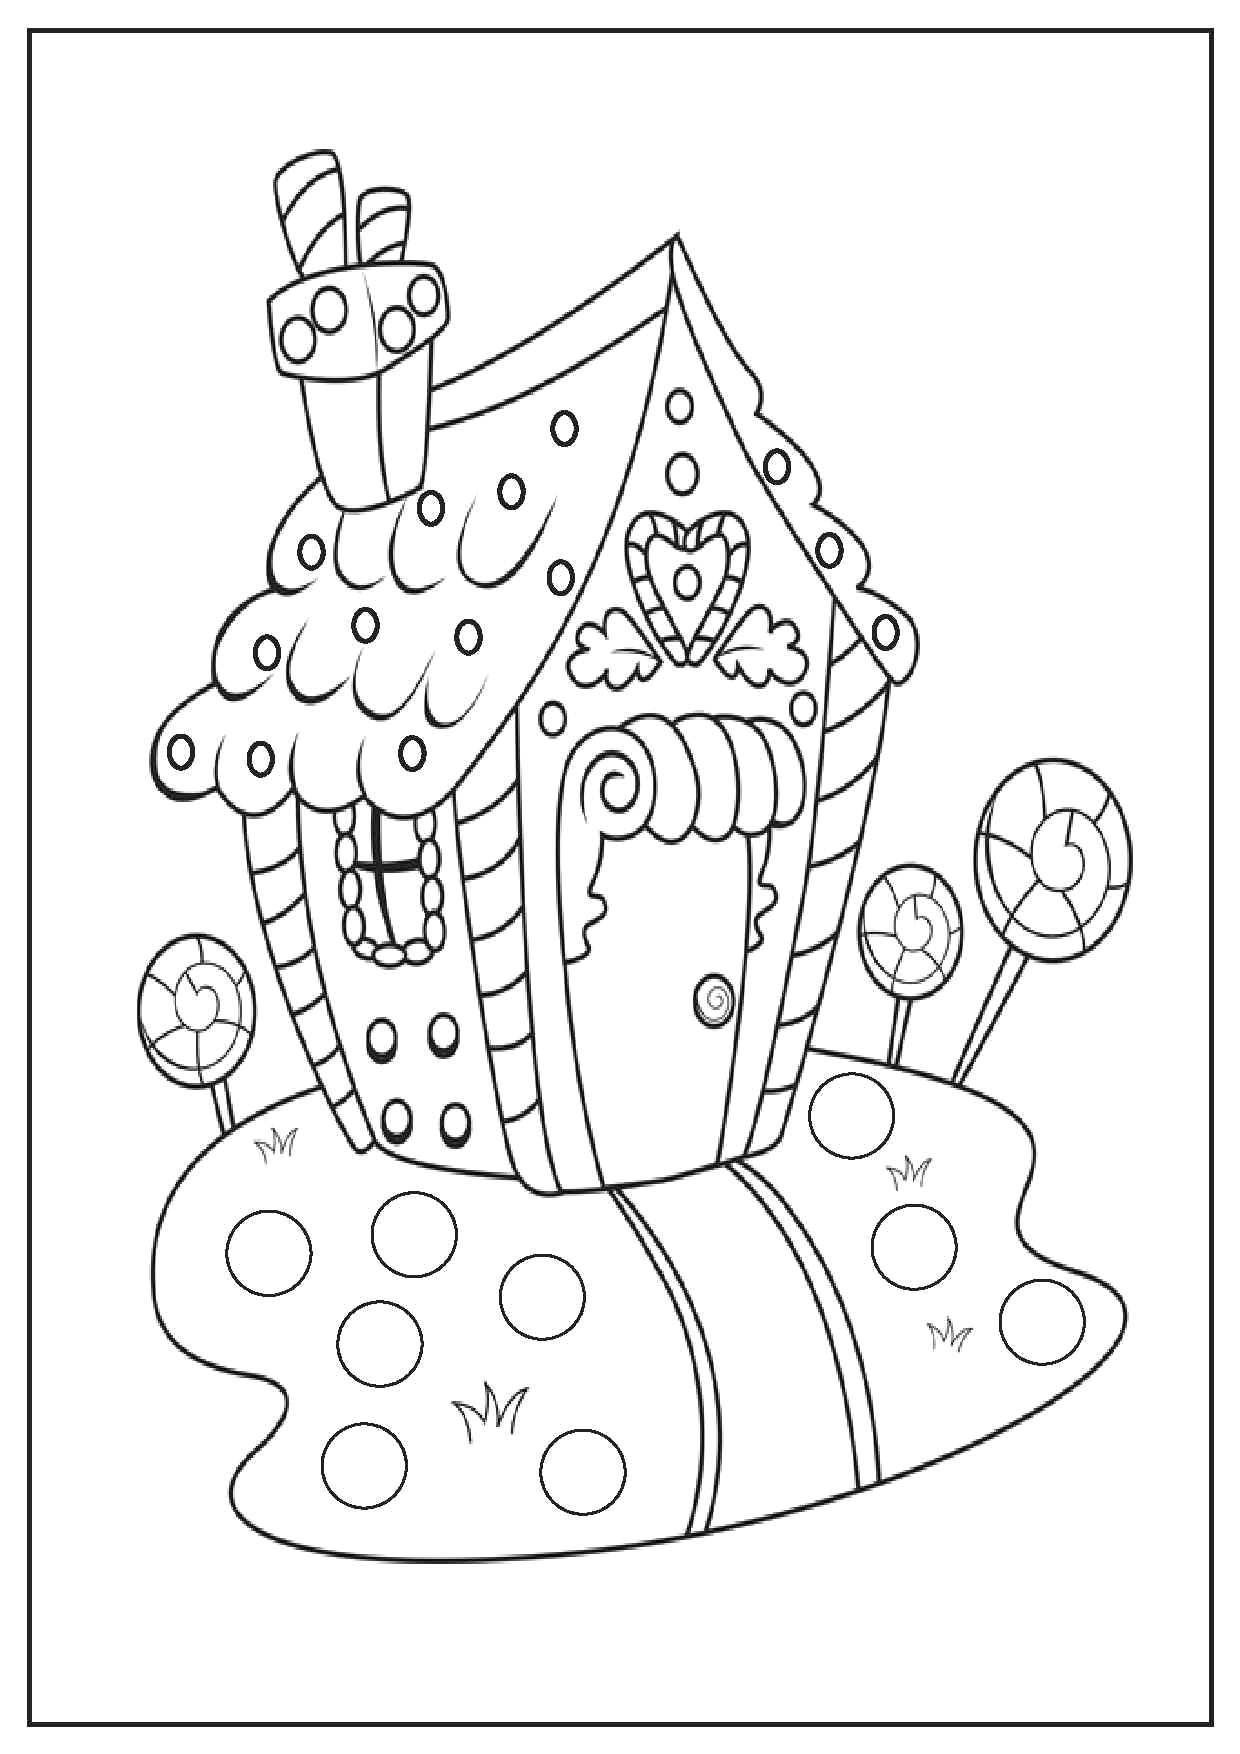 Coloring Pages for Kids that You Can Print Cool Coloring Pages that You Can Print Coloring Home